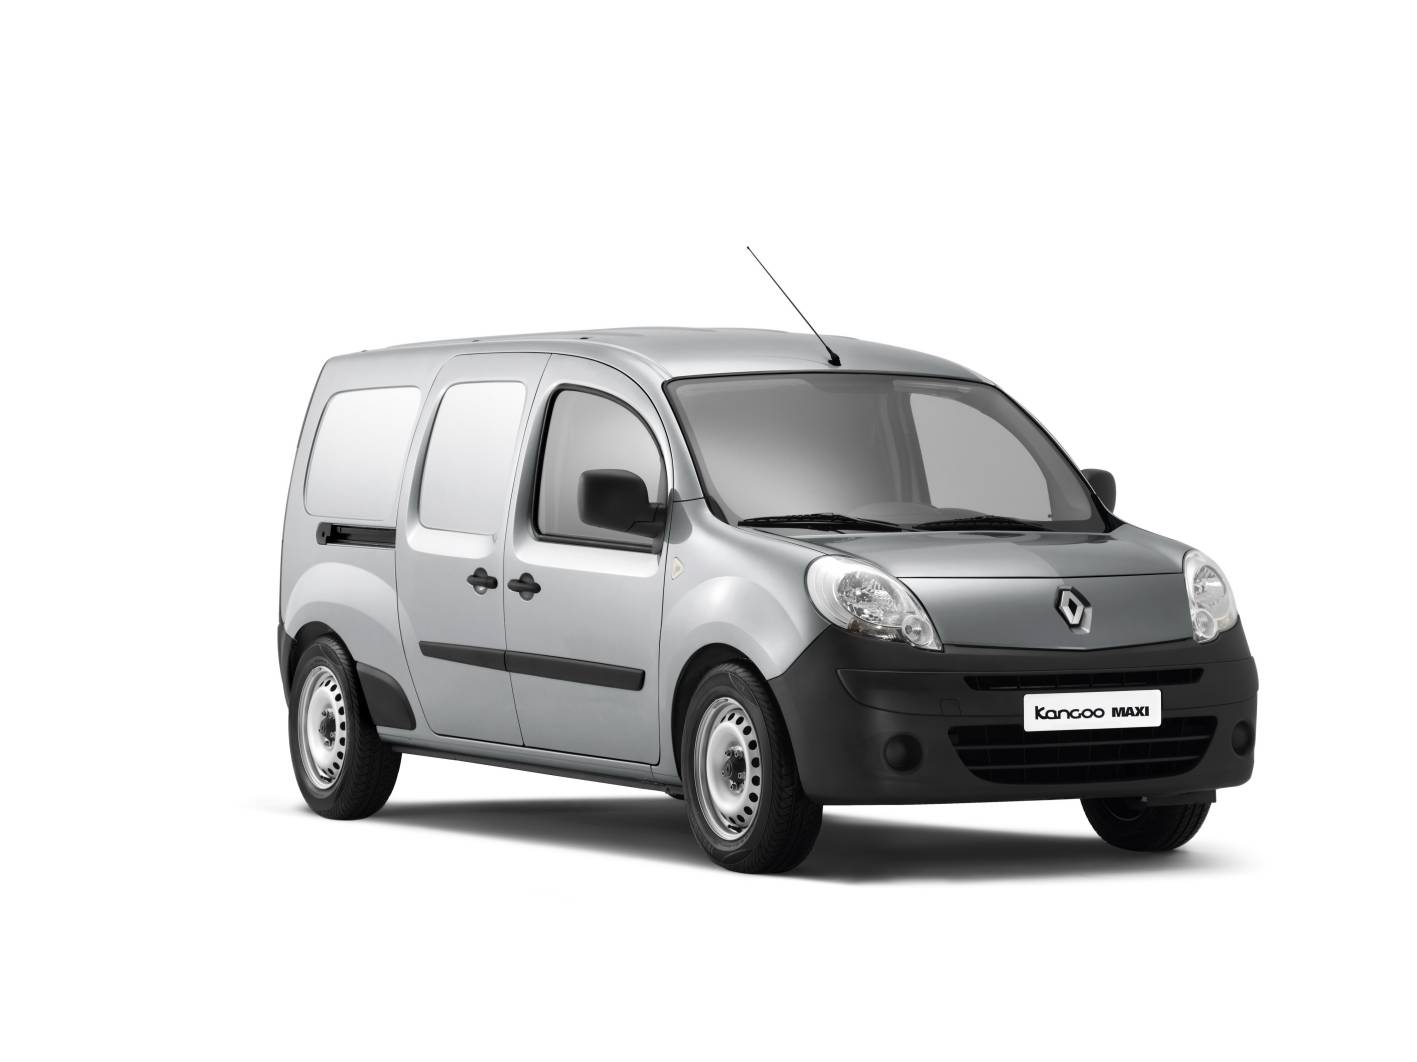 review 22 990 starting price and long wheelbase model for renault s kangoo van. Black Bedroom Furniture Sets. Home Design Ideas